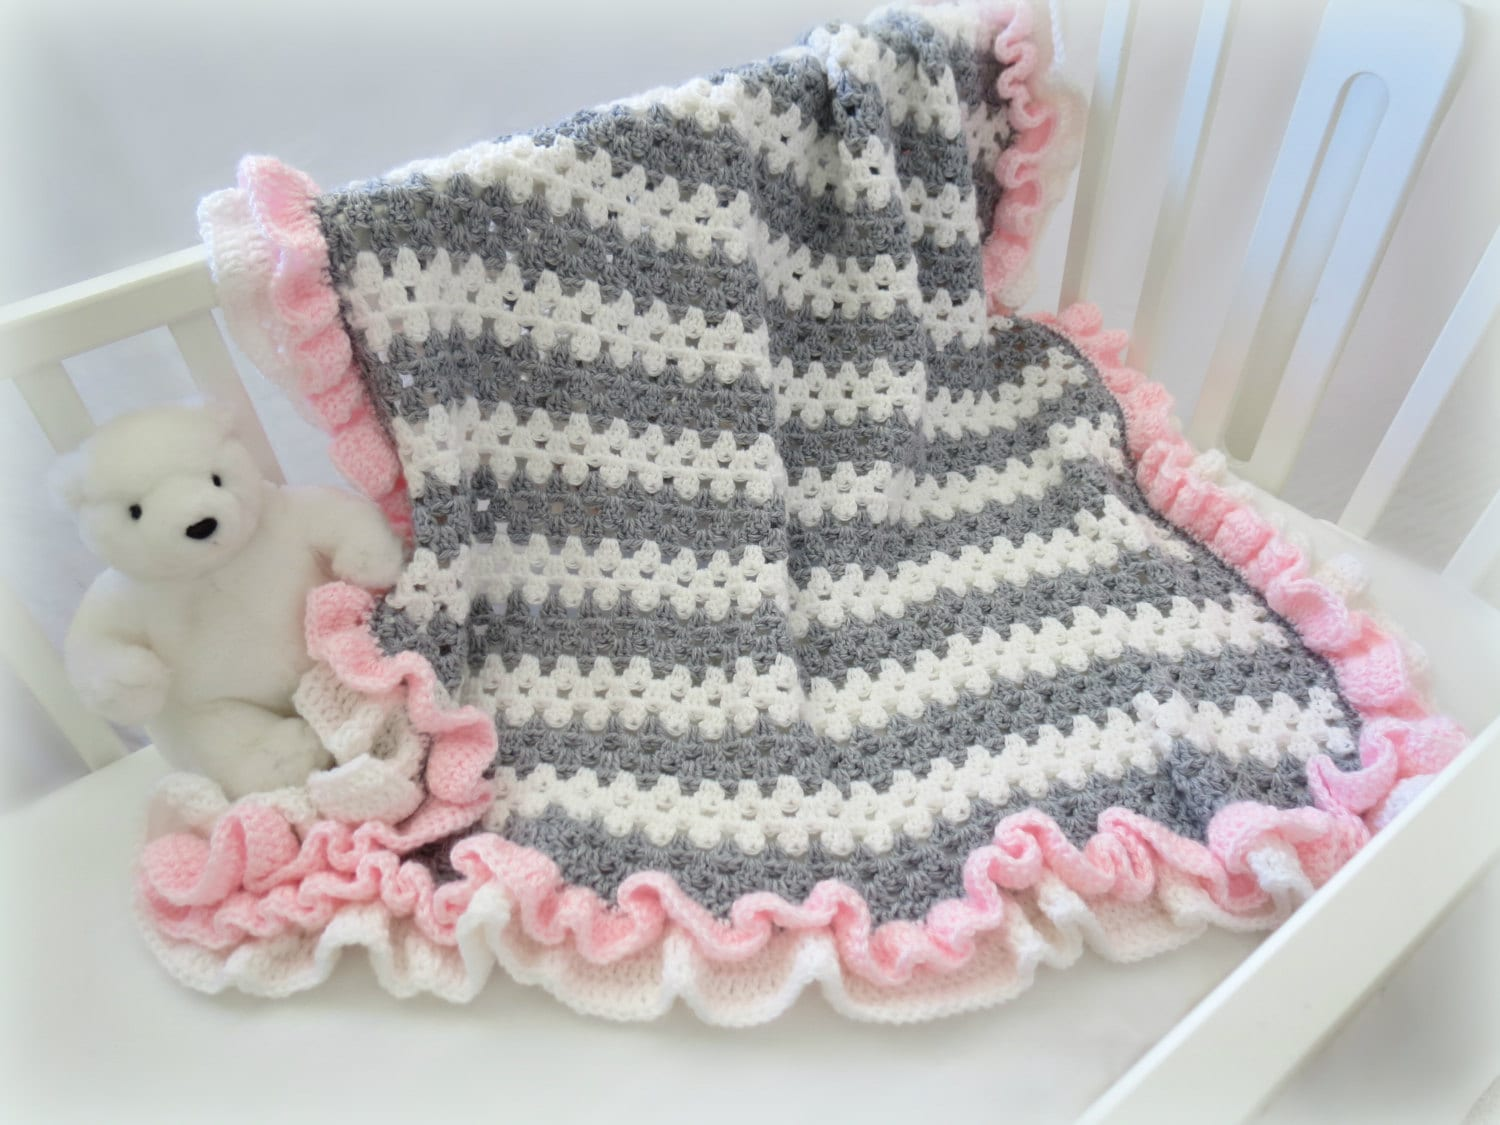 Different Crochet Patterns For Baby Blankets : Crochet Baby Blanket Pattern Baby Crochet Blanket Afghan